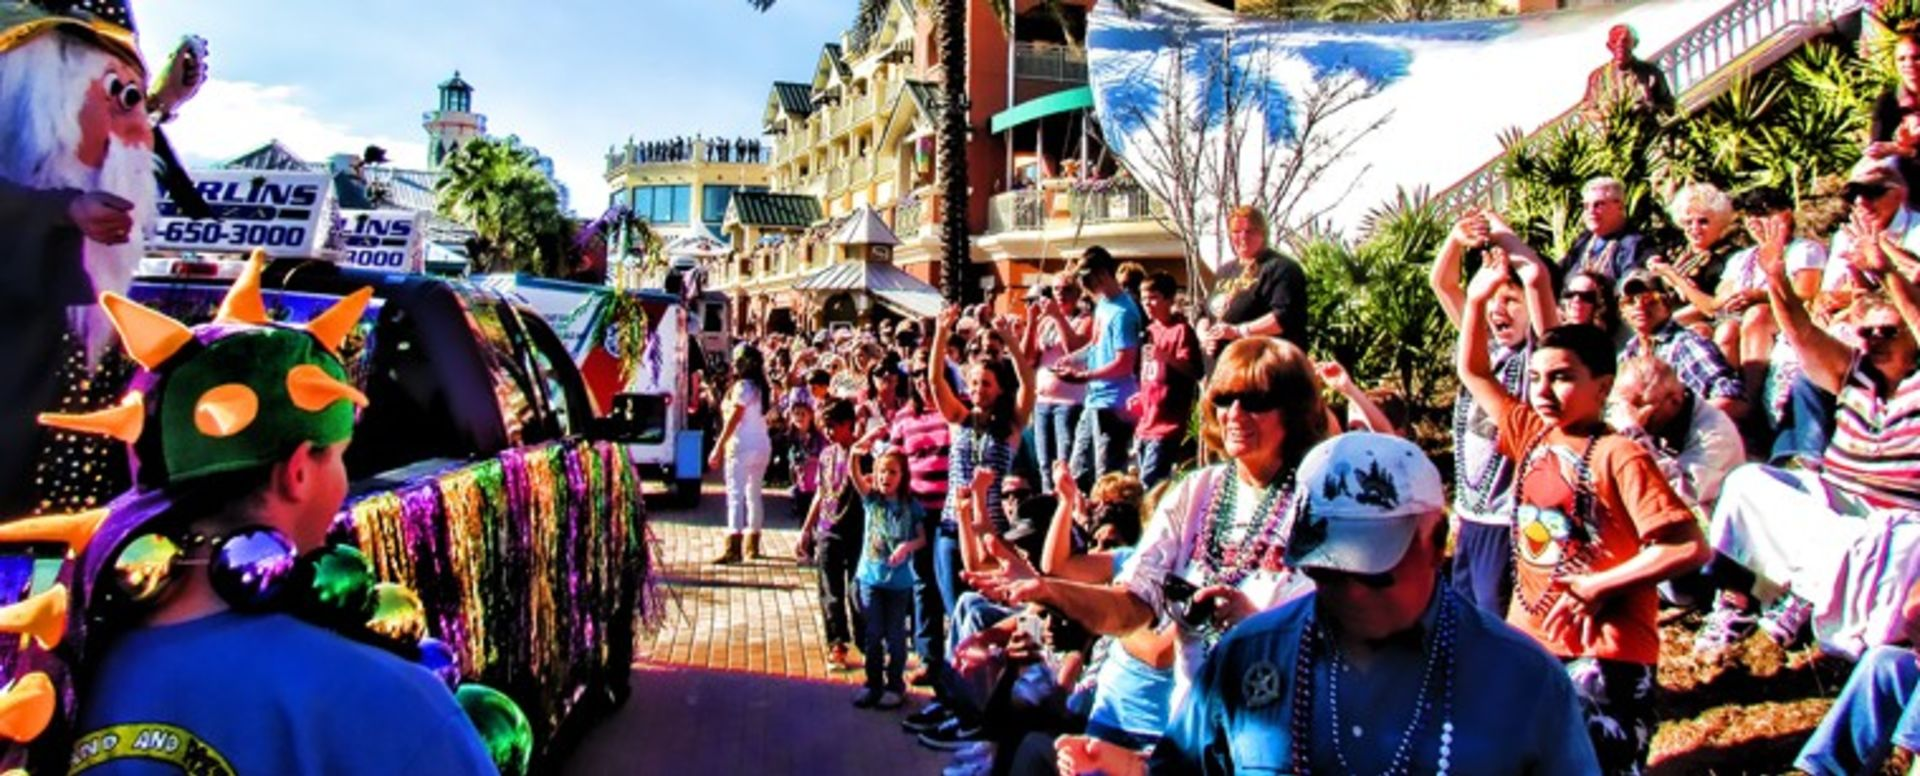 Let the Good Times Roll! Local Mardi Gras Events